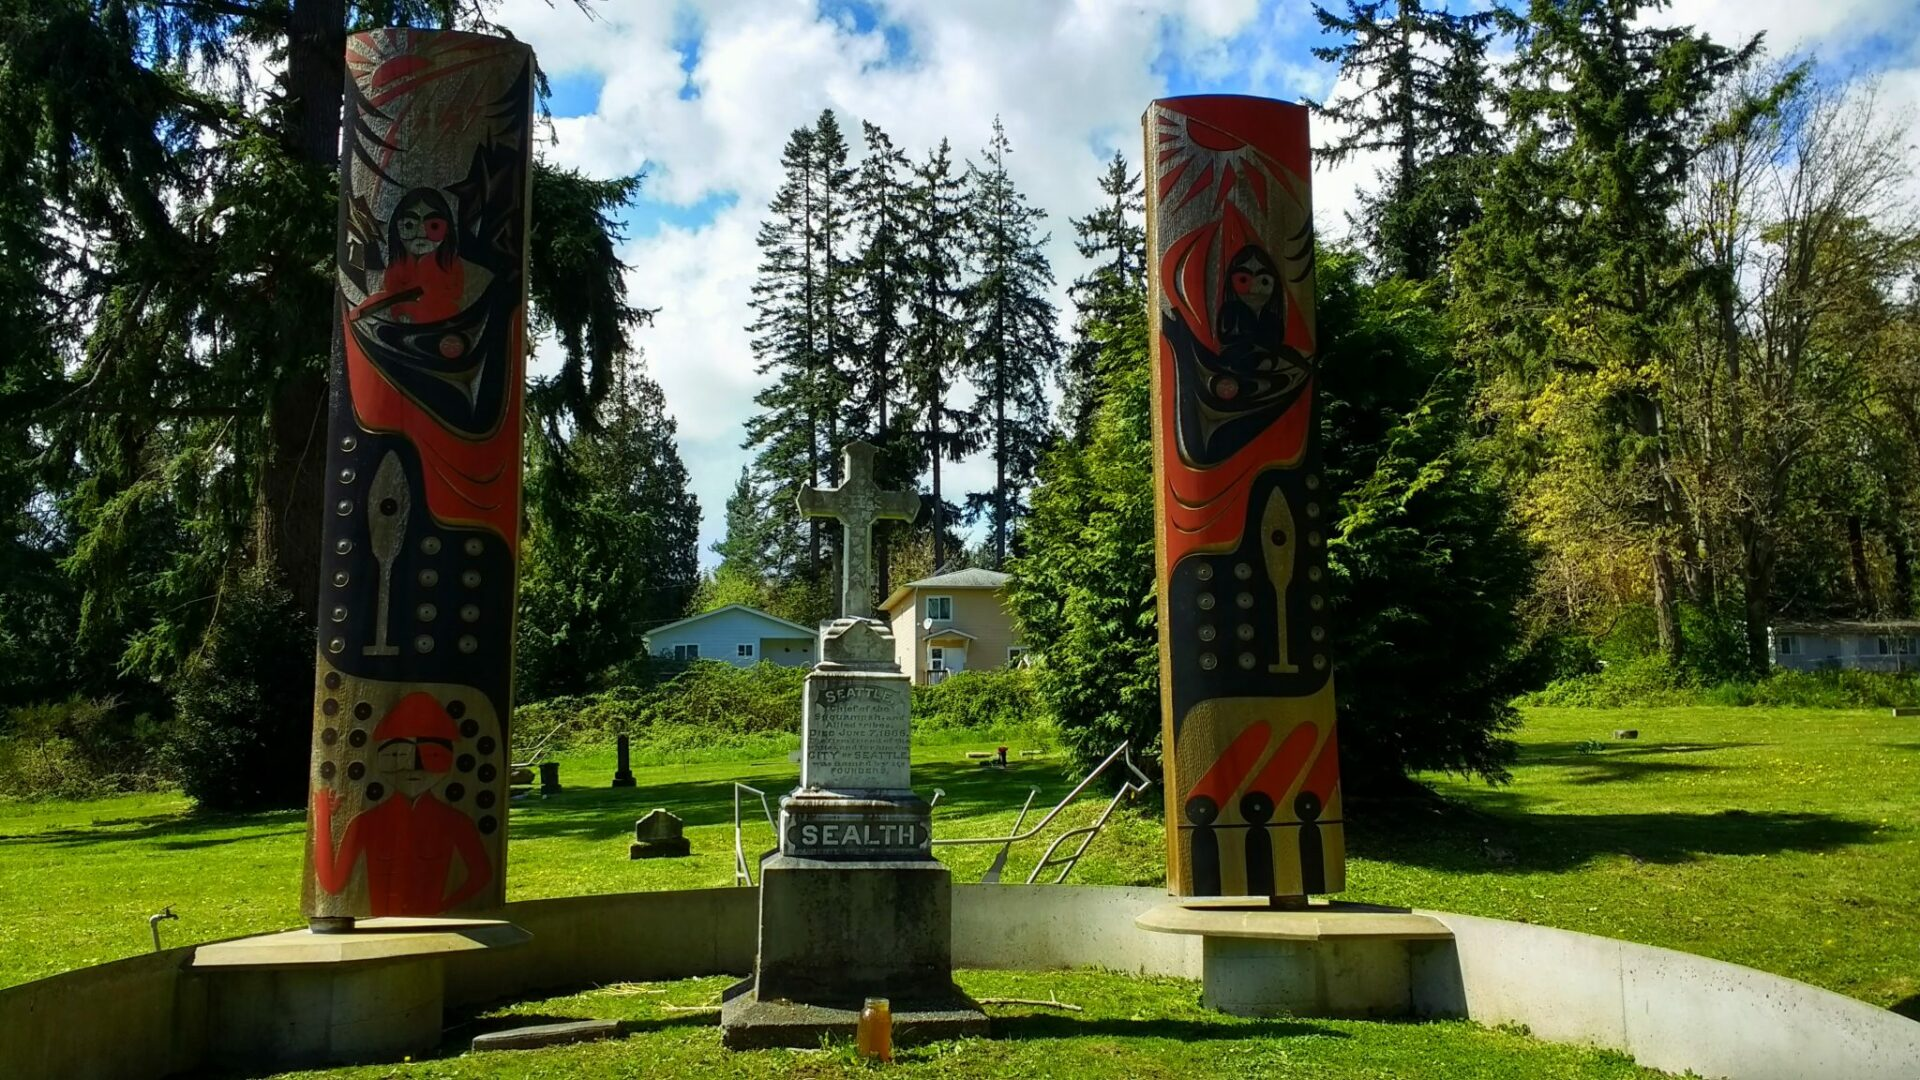 Two poles with carvings in red and black are next to a high stone gravestone which says Sealth and has a white cross on top. It is surrounded by a small cemetery and a few houses in the distance and evergreen trees